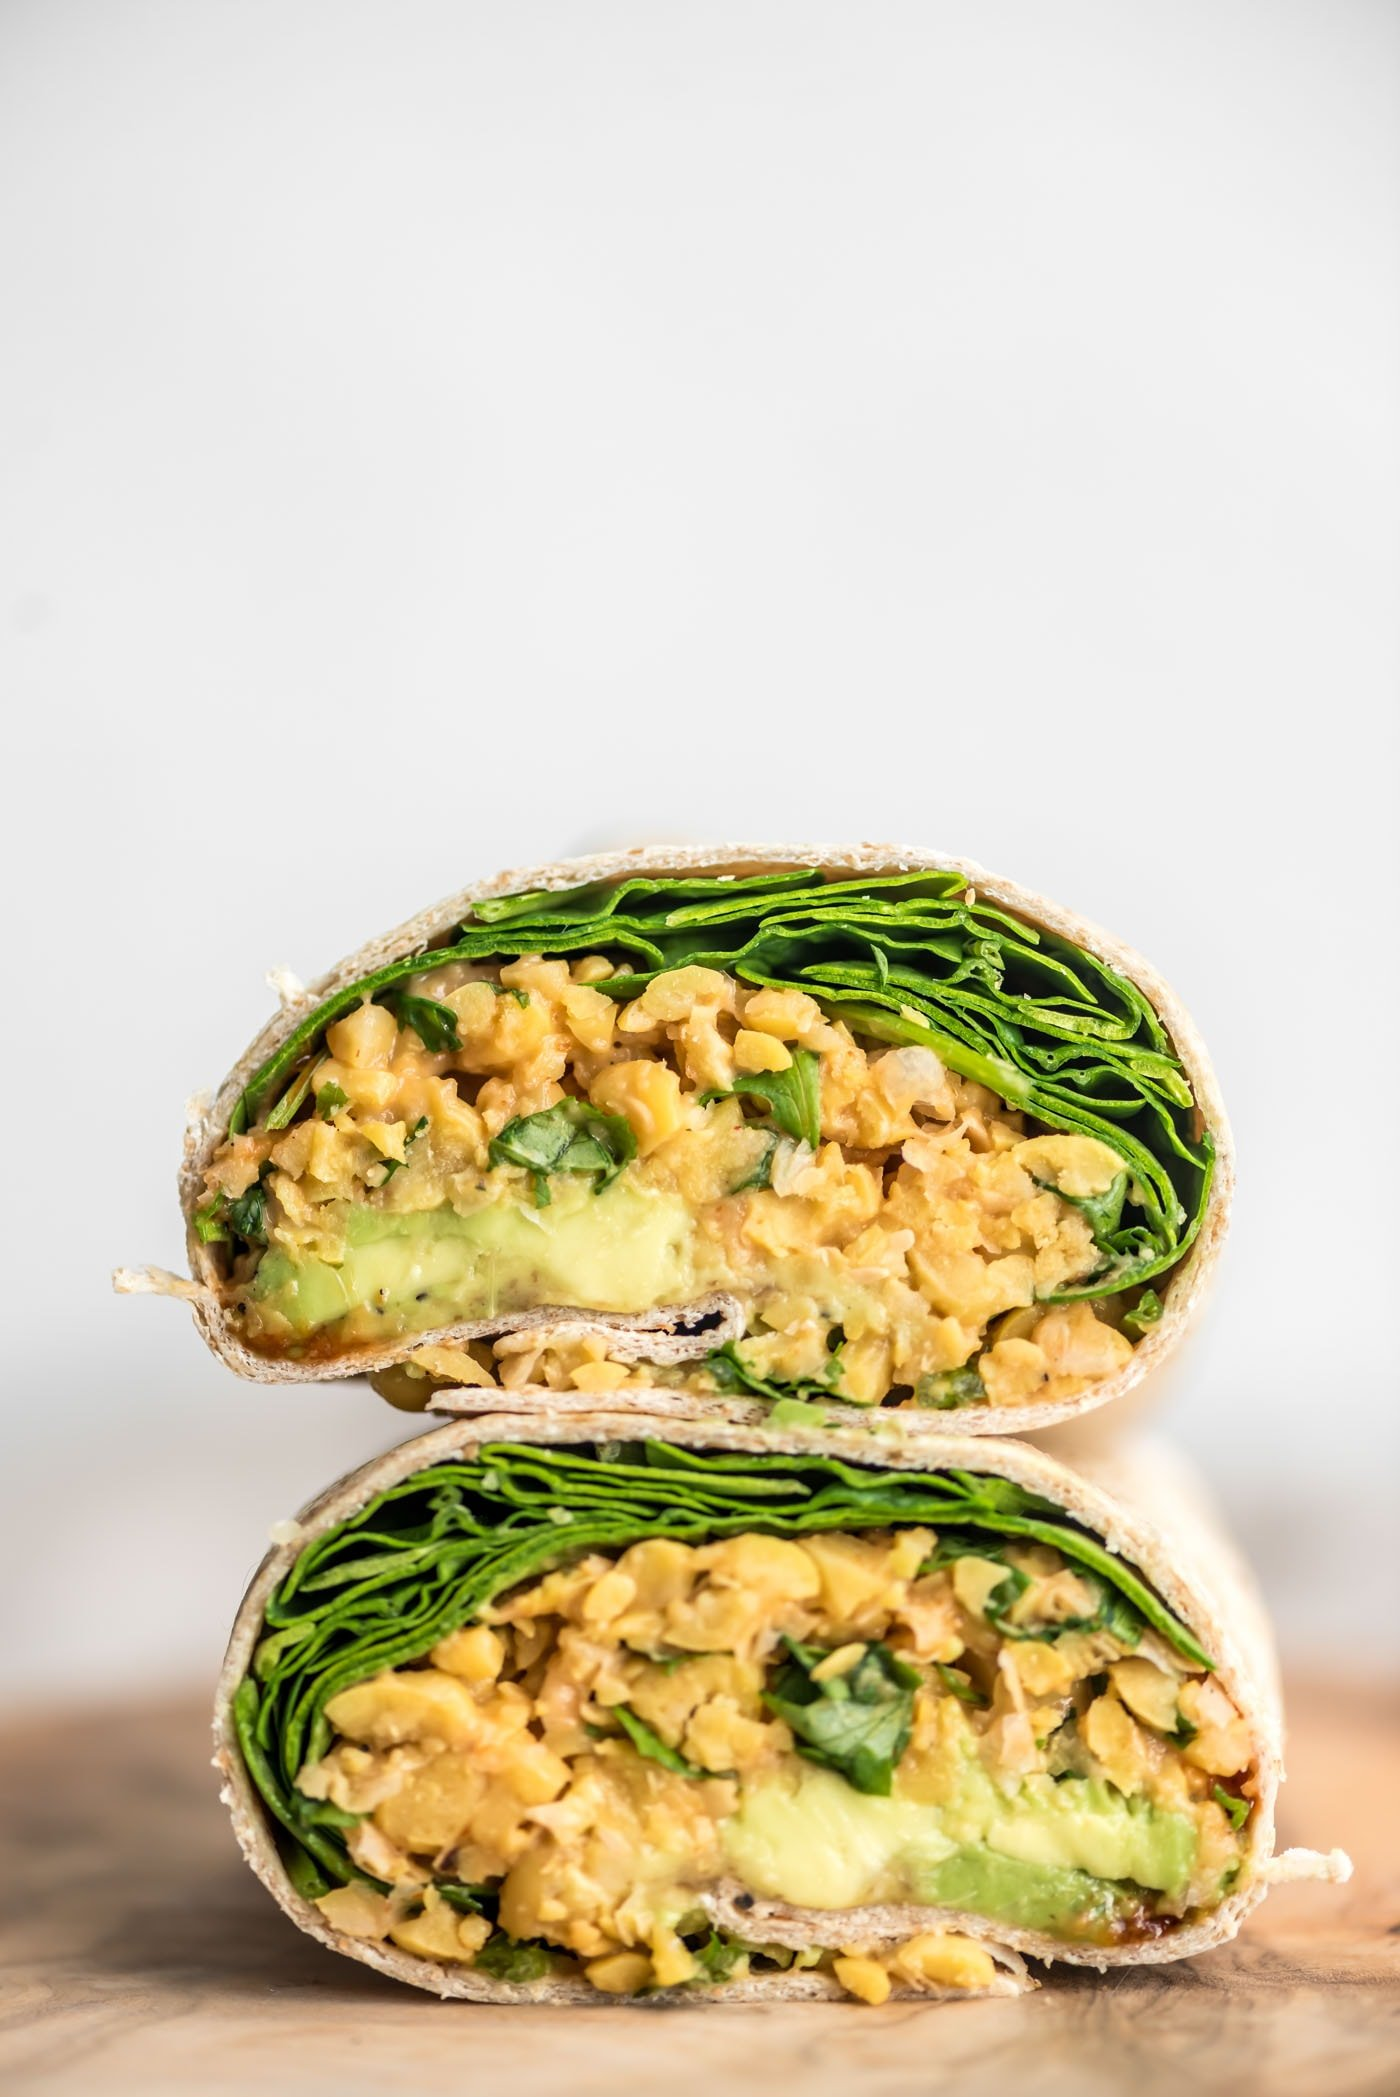 SPICY CHICKPEA WRAPS WITH AVOCADO AND SPINACH VEGAN